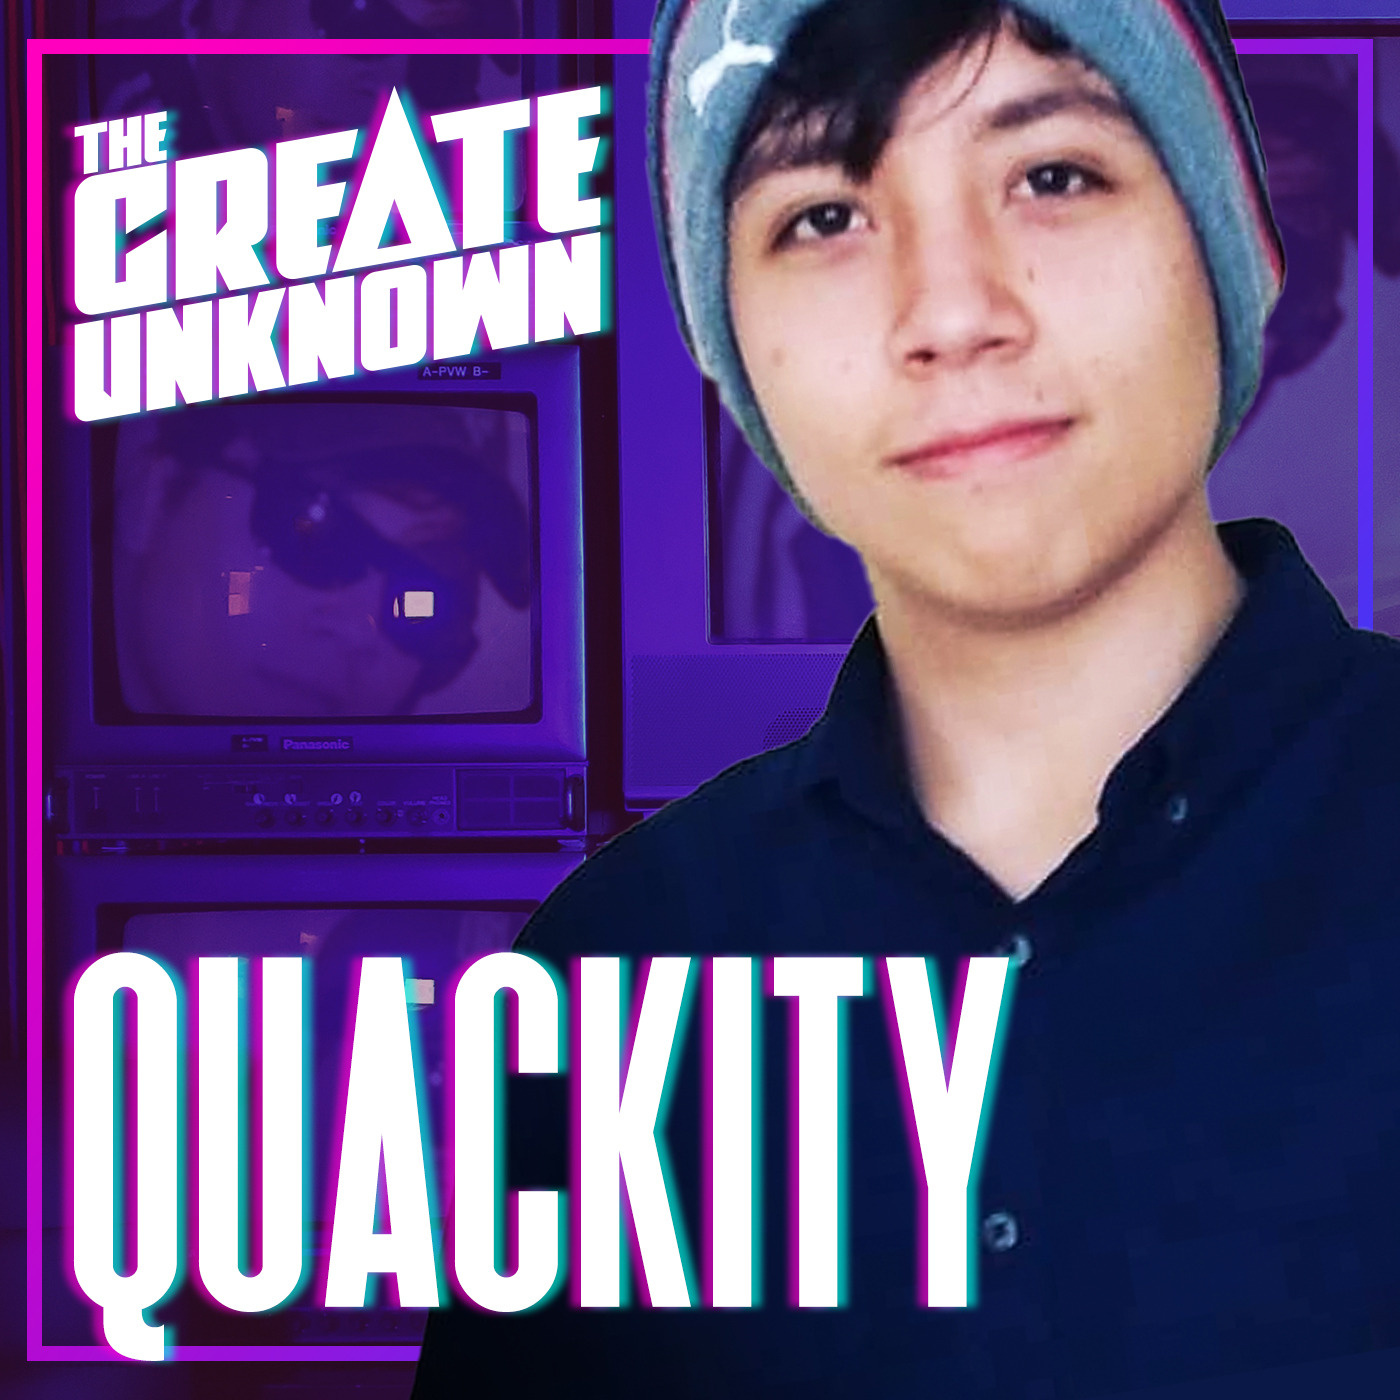 Quackity enters The Create Unknown